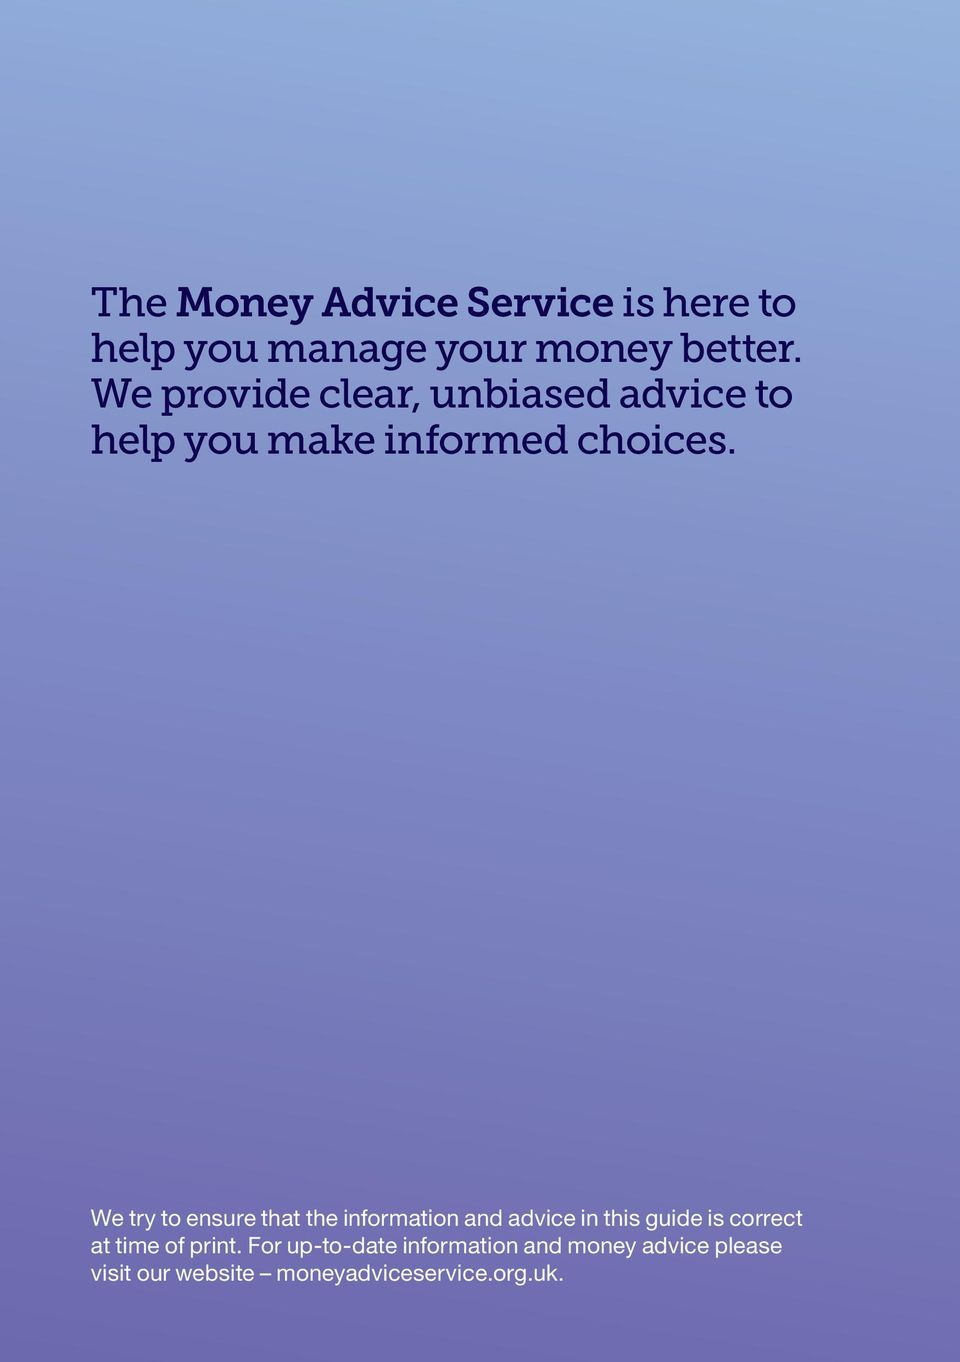 We try to ensure that the information and advice in this guide is correct at time